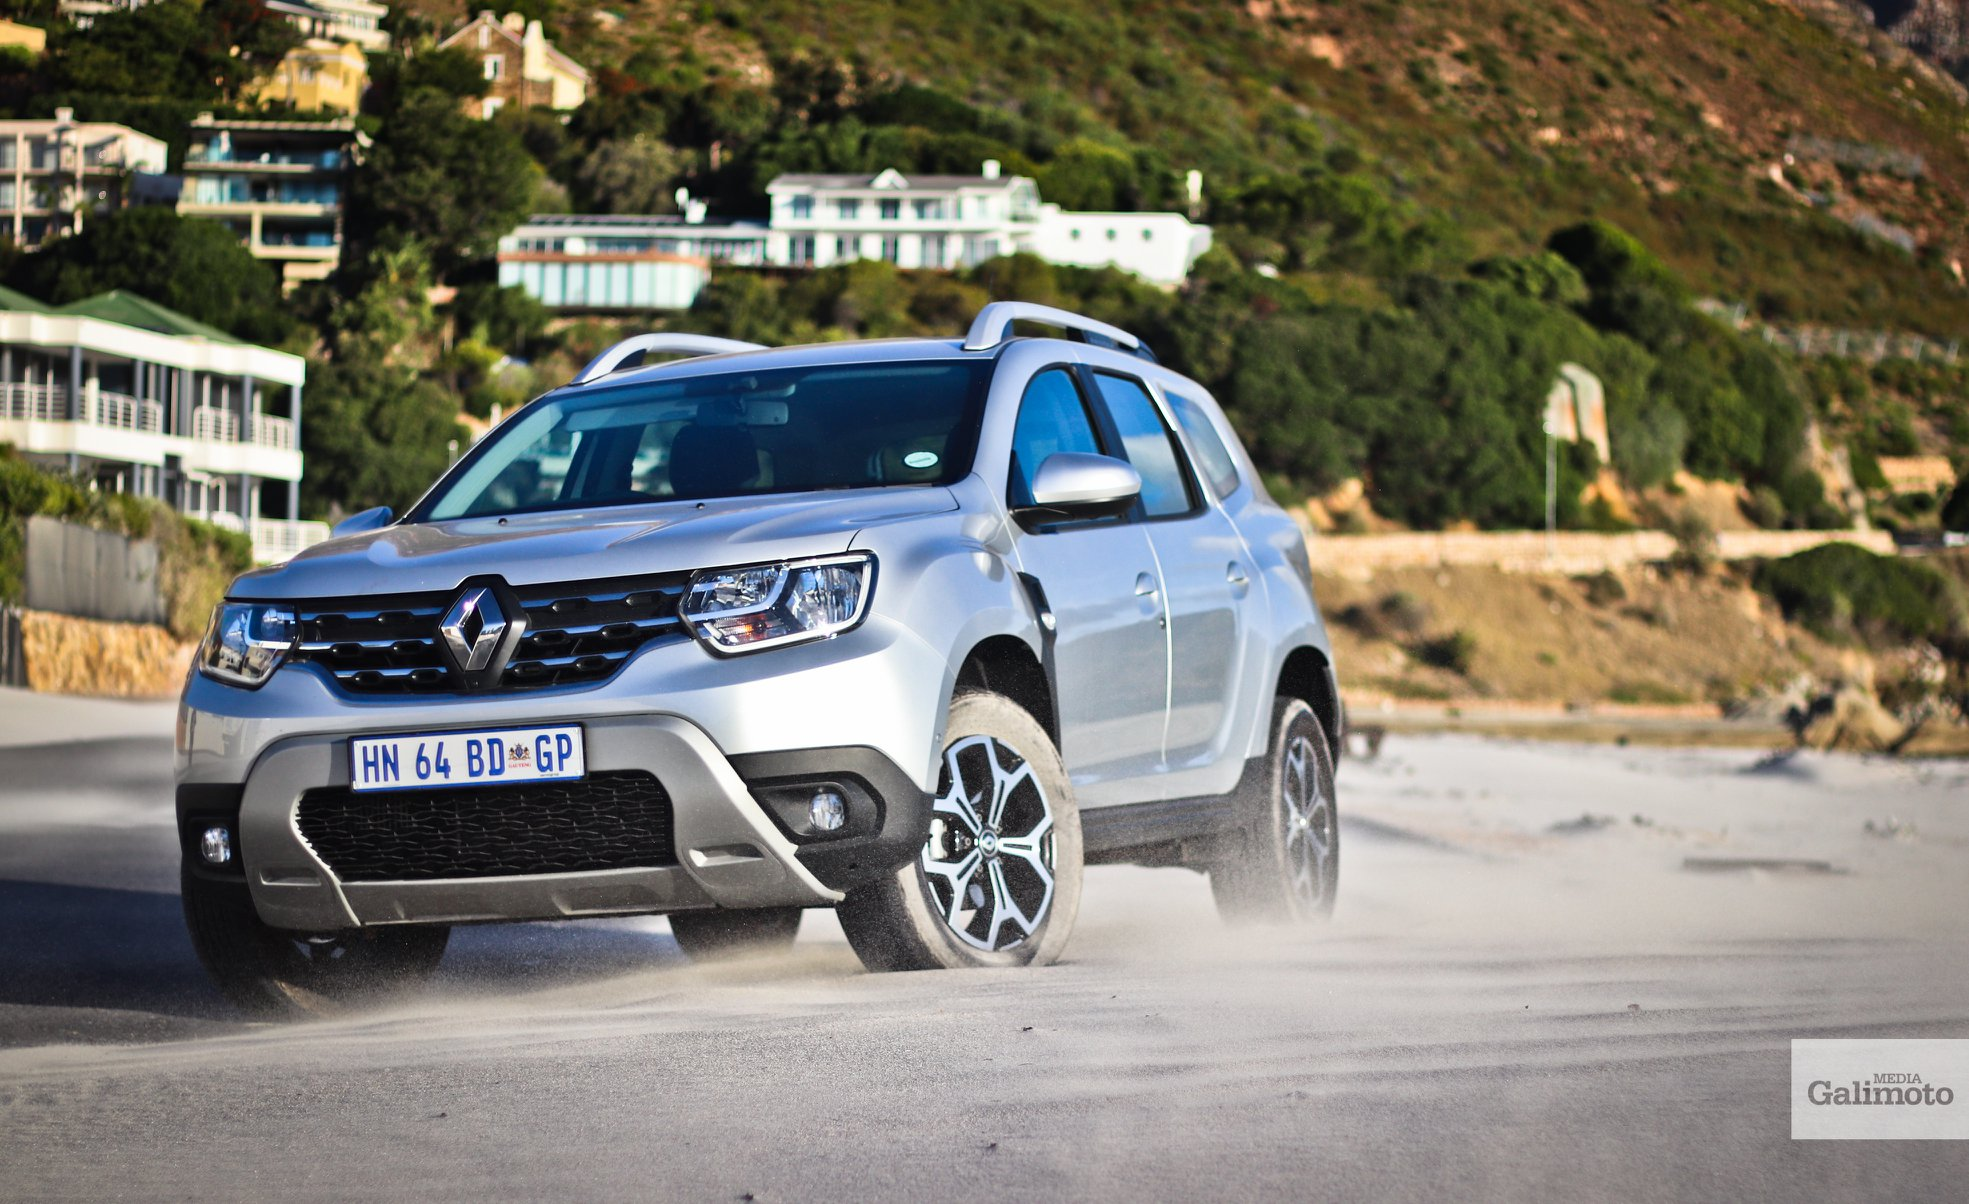 Tested: 2018 Renault Duster 1.5 dCi Prestige (Auto)